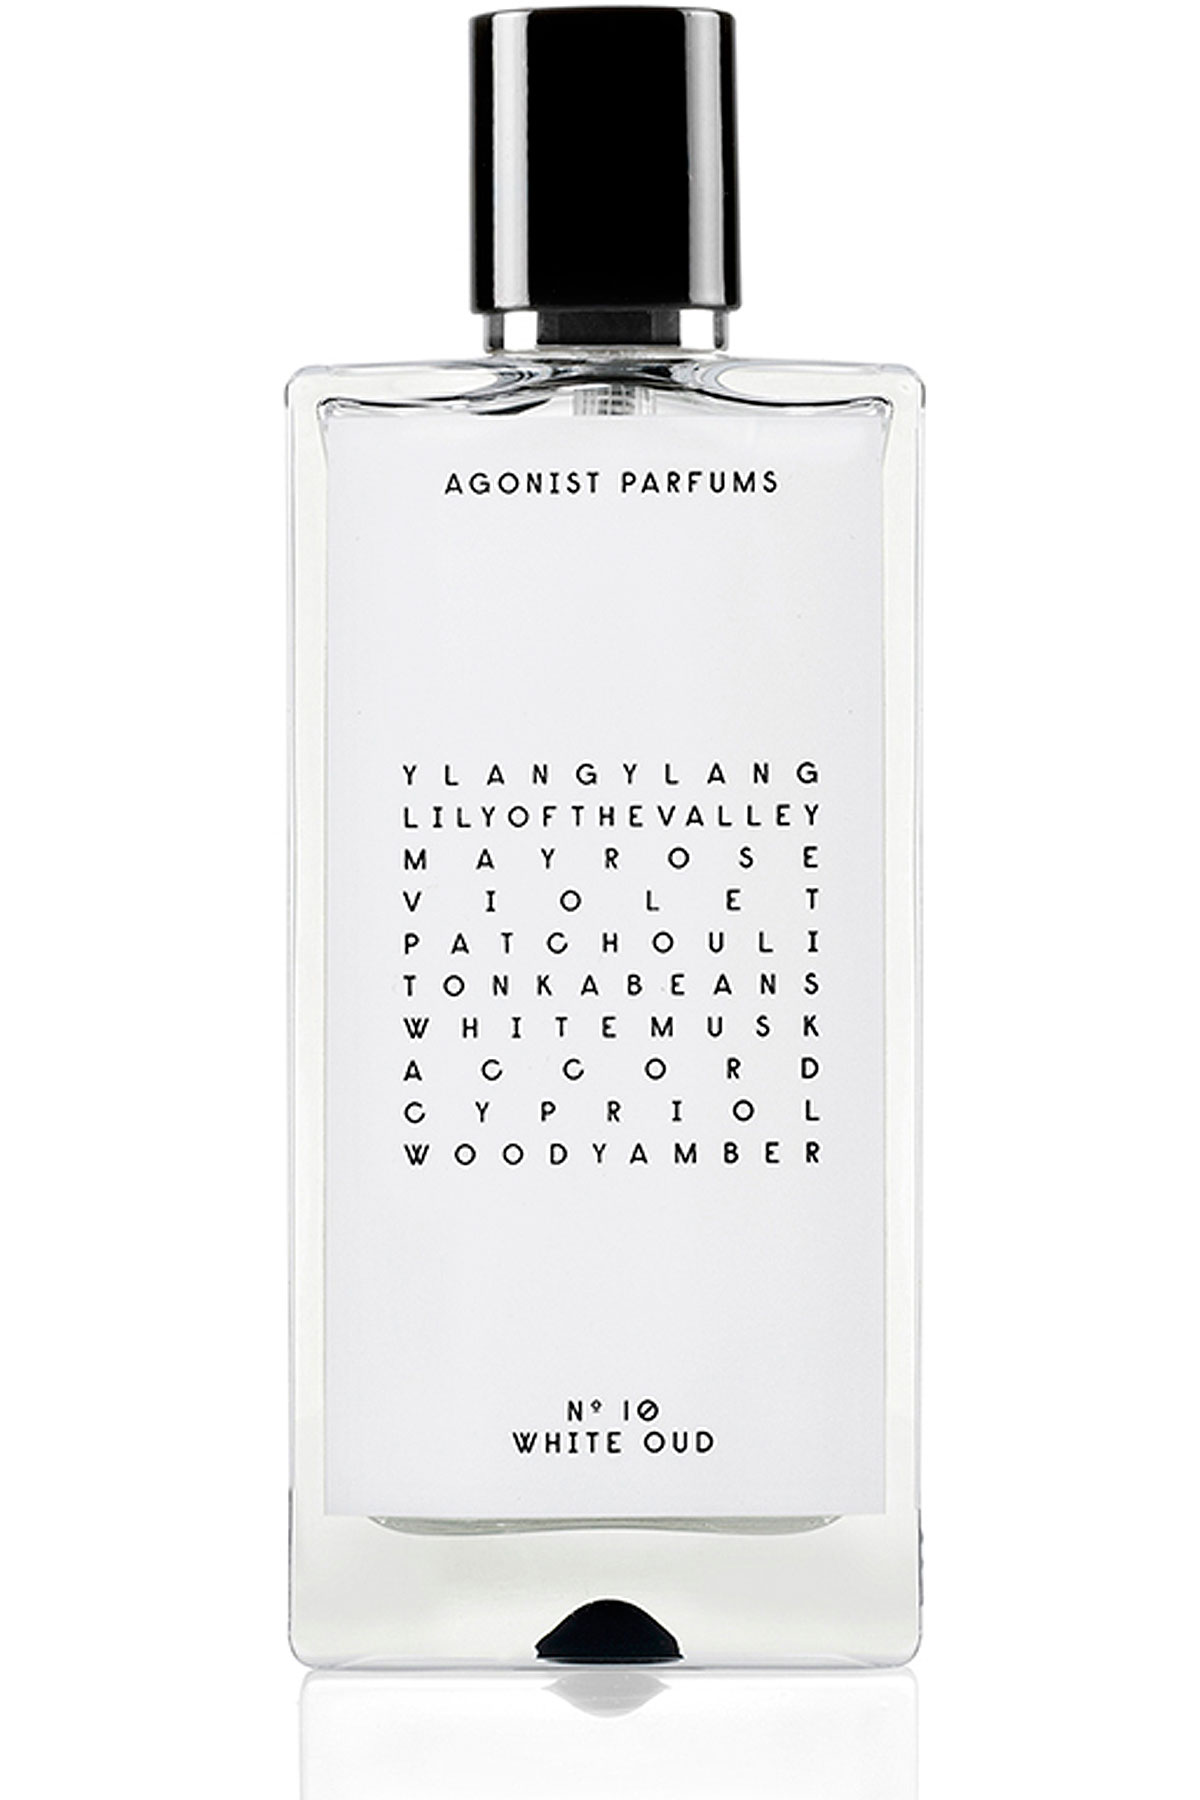 Agonist Fragrances for Women, N10 White Oud - Eau De Parfum - 50 Ml, 2019, 50 ml